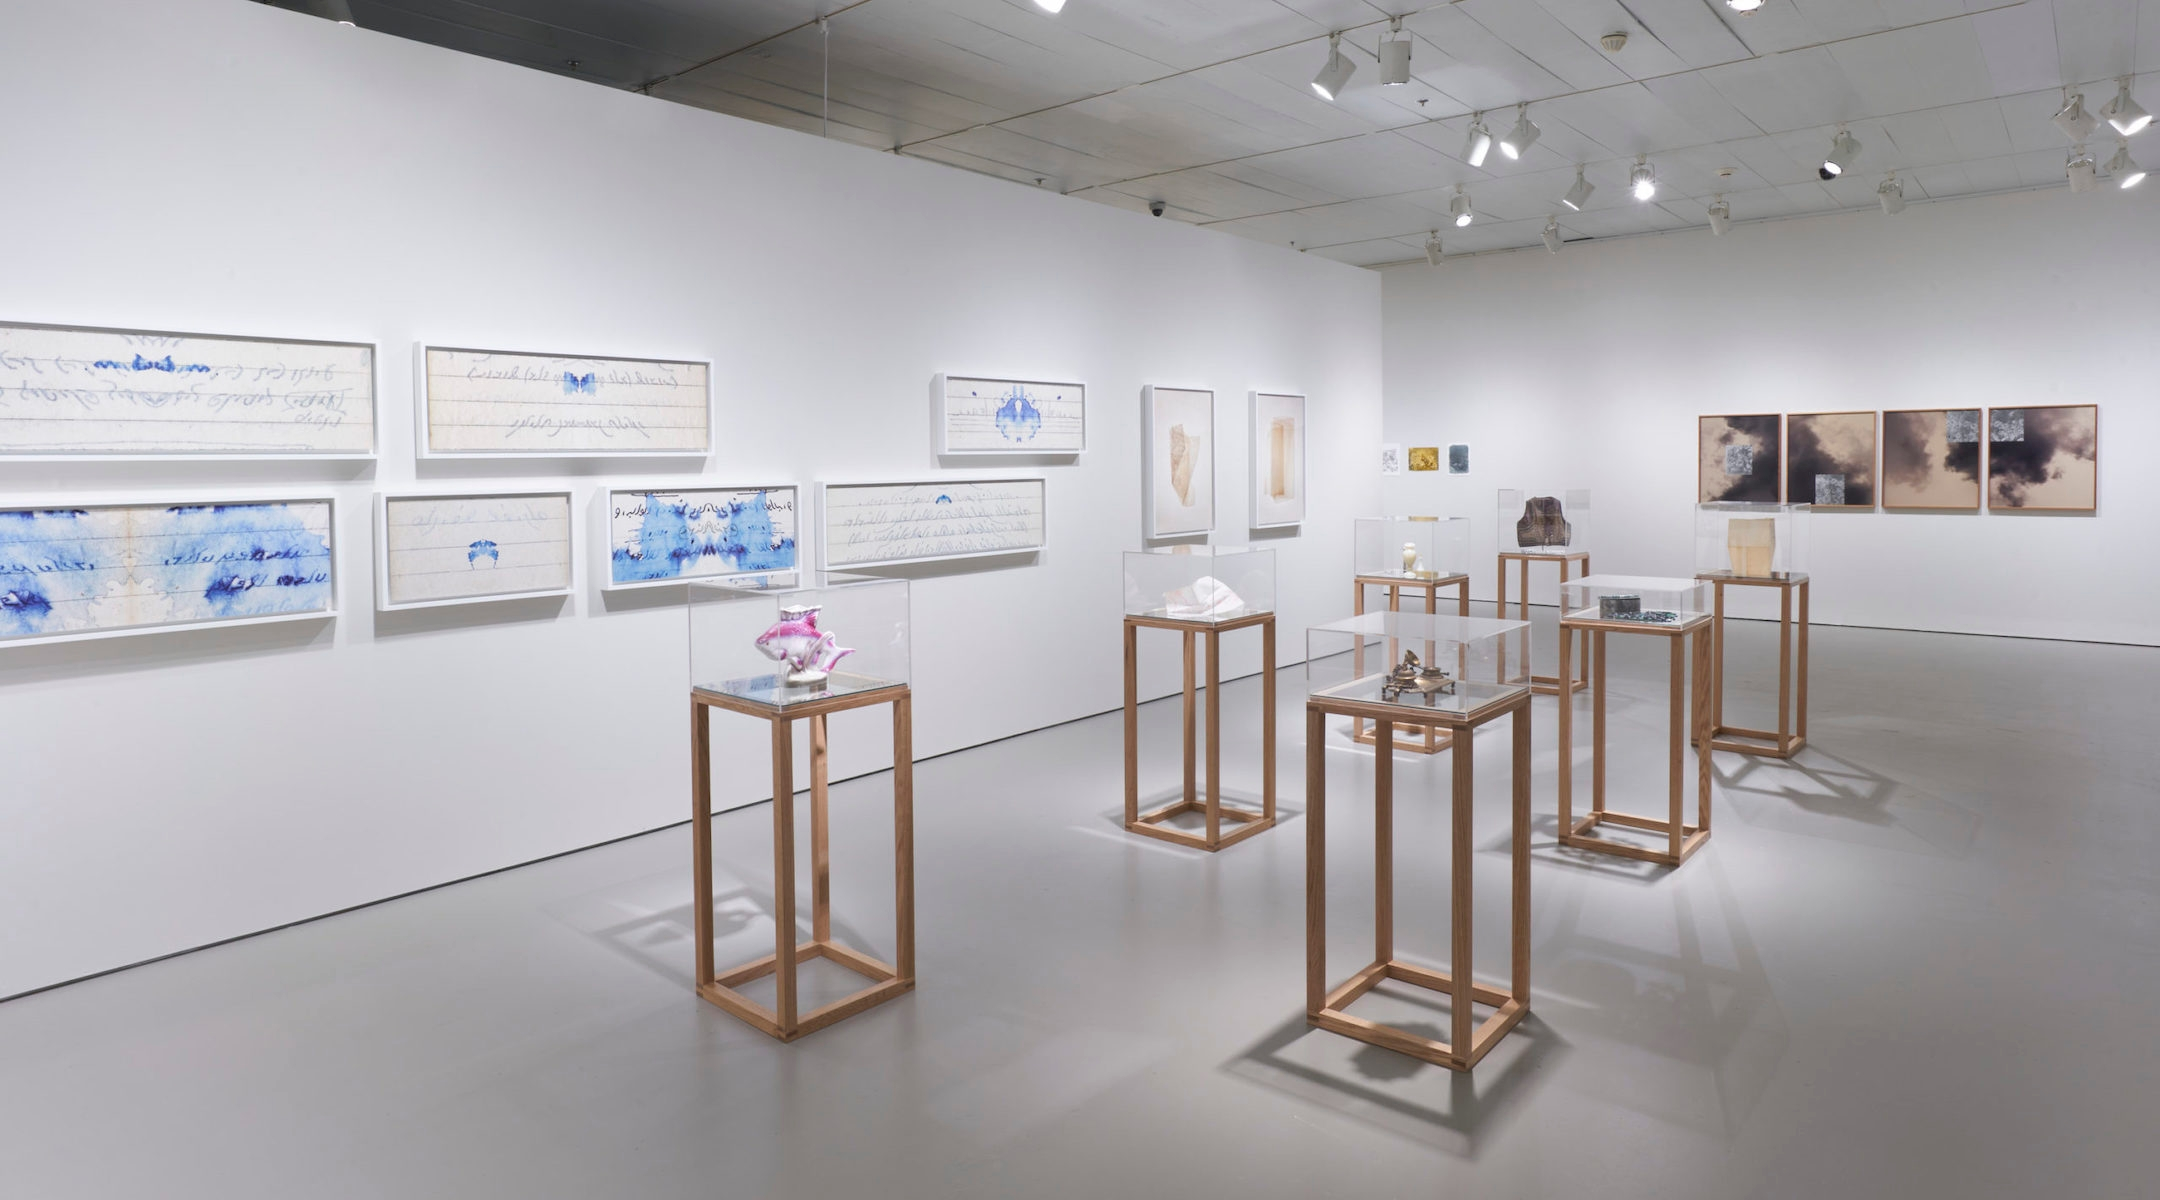 """Dor Guez, """"Letters from the Greater Maghreb"""" and """"Belly of the Boat"""", and collages by Lisa Oppenheim. Installation view by Steven Paneccasio."""